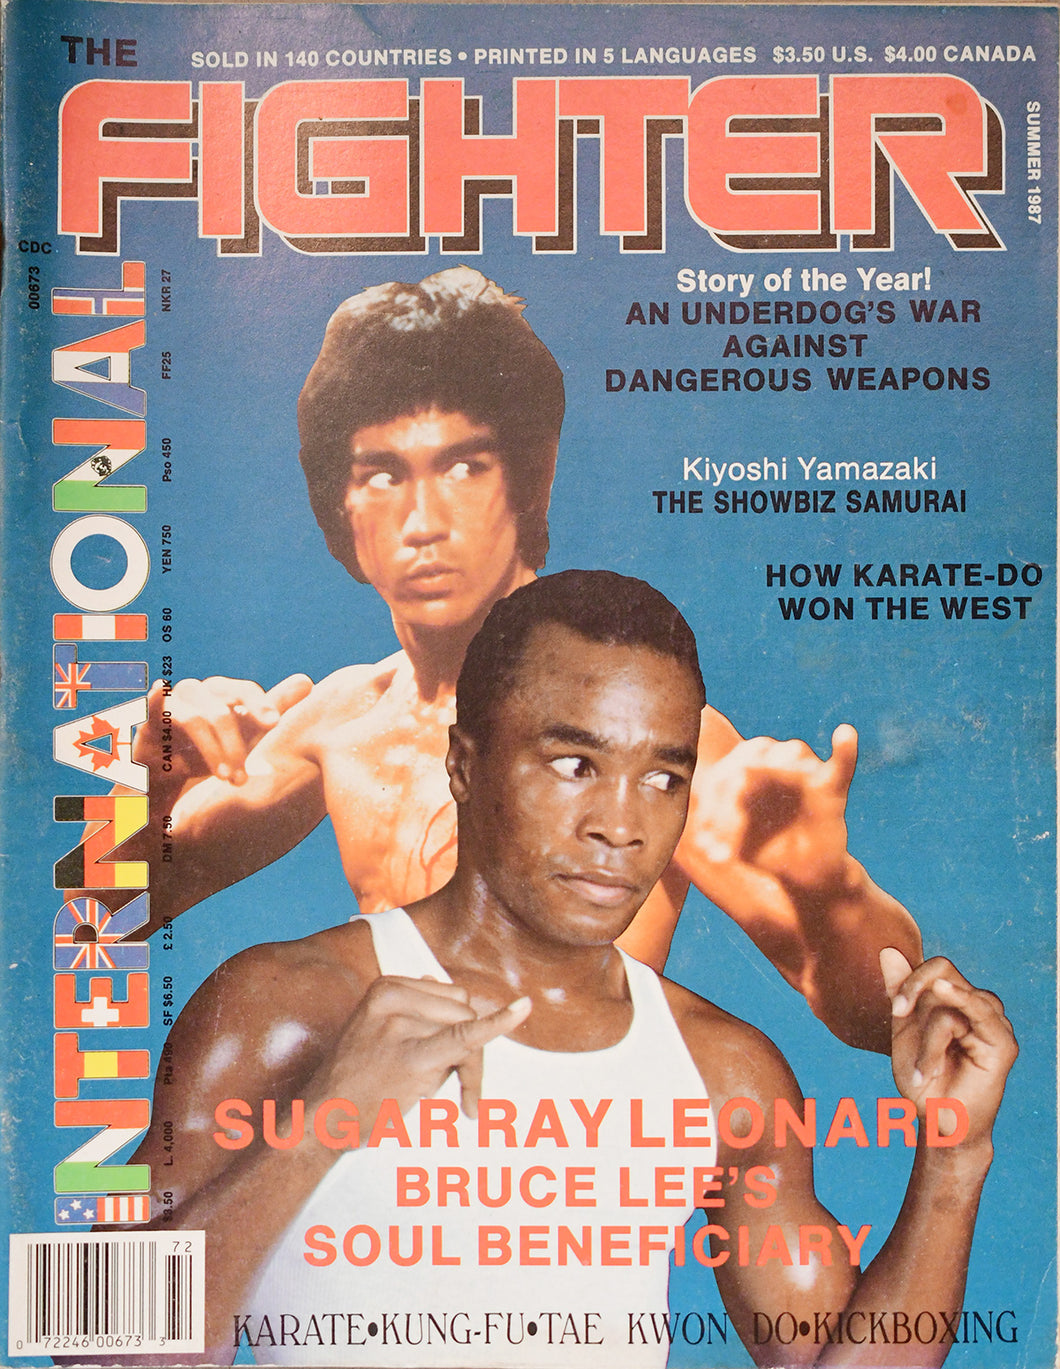 Bruce Lee vs. Sugar Ray Leonard